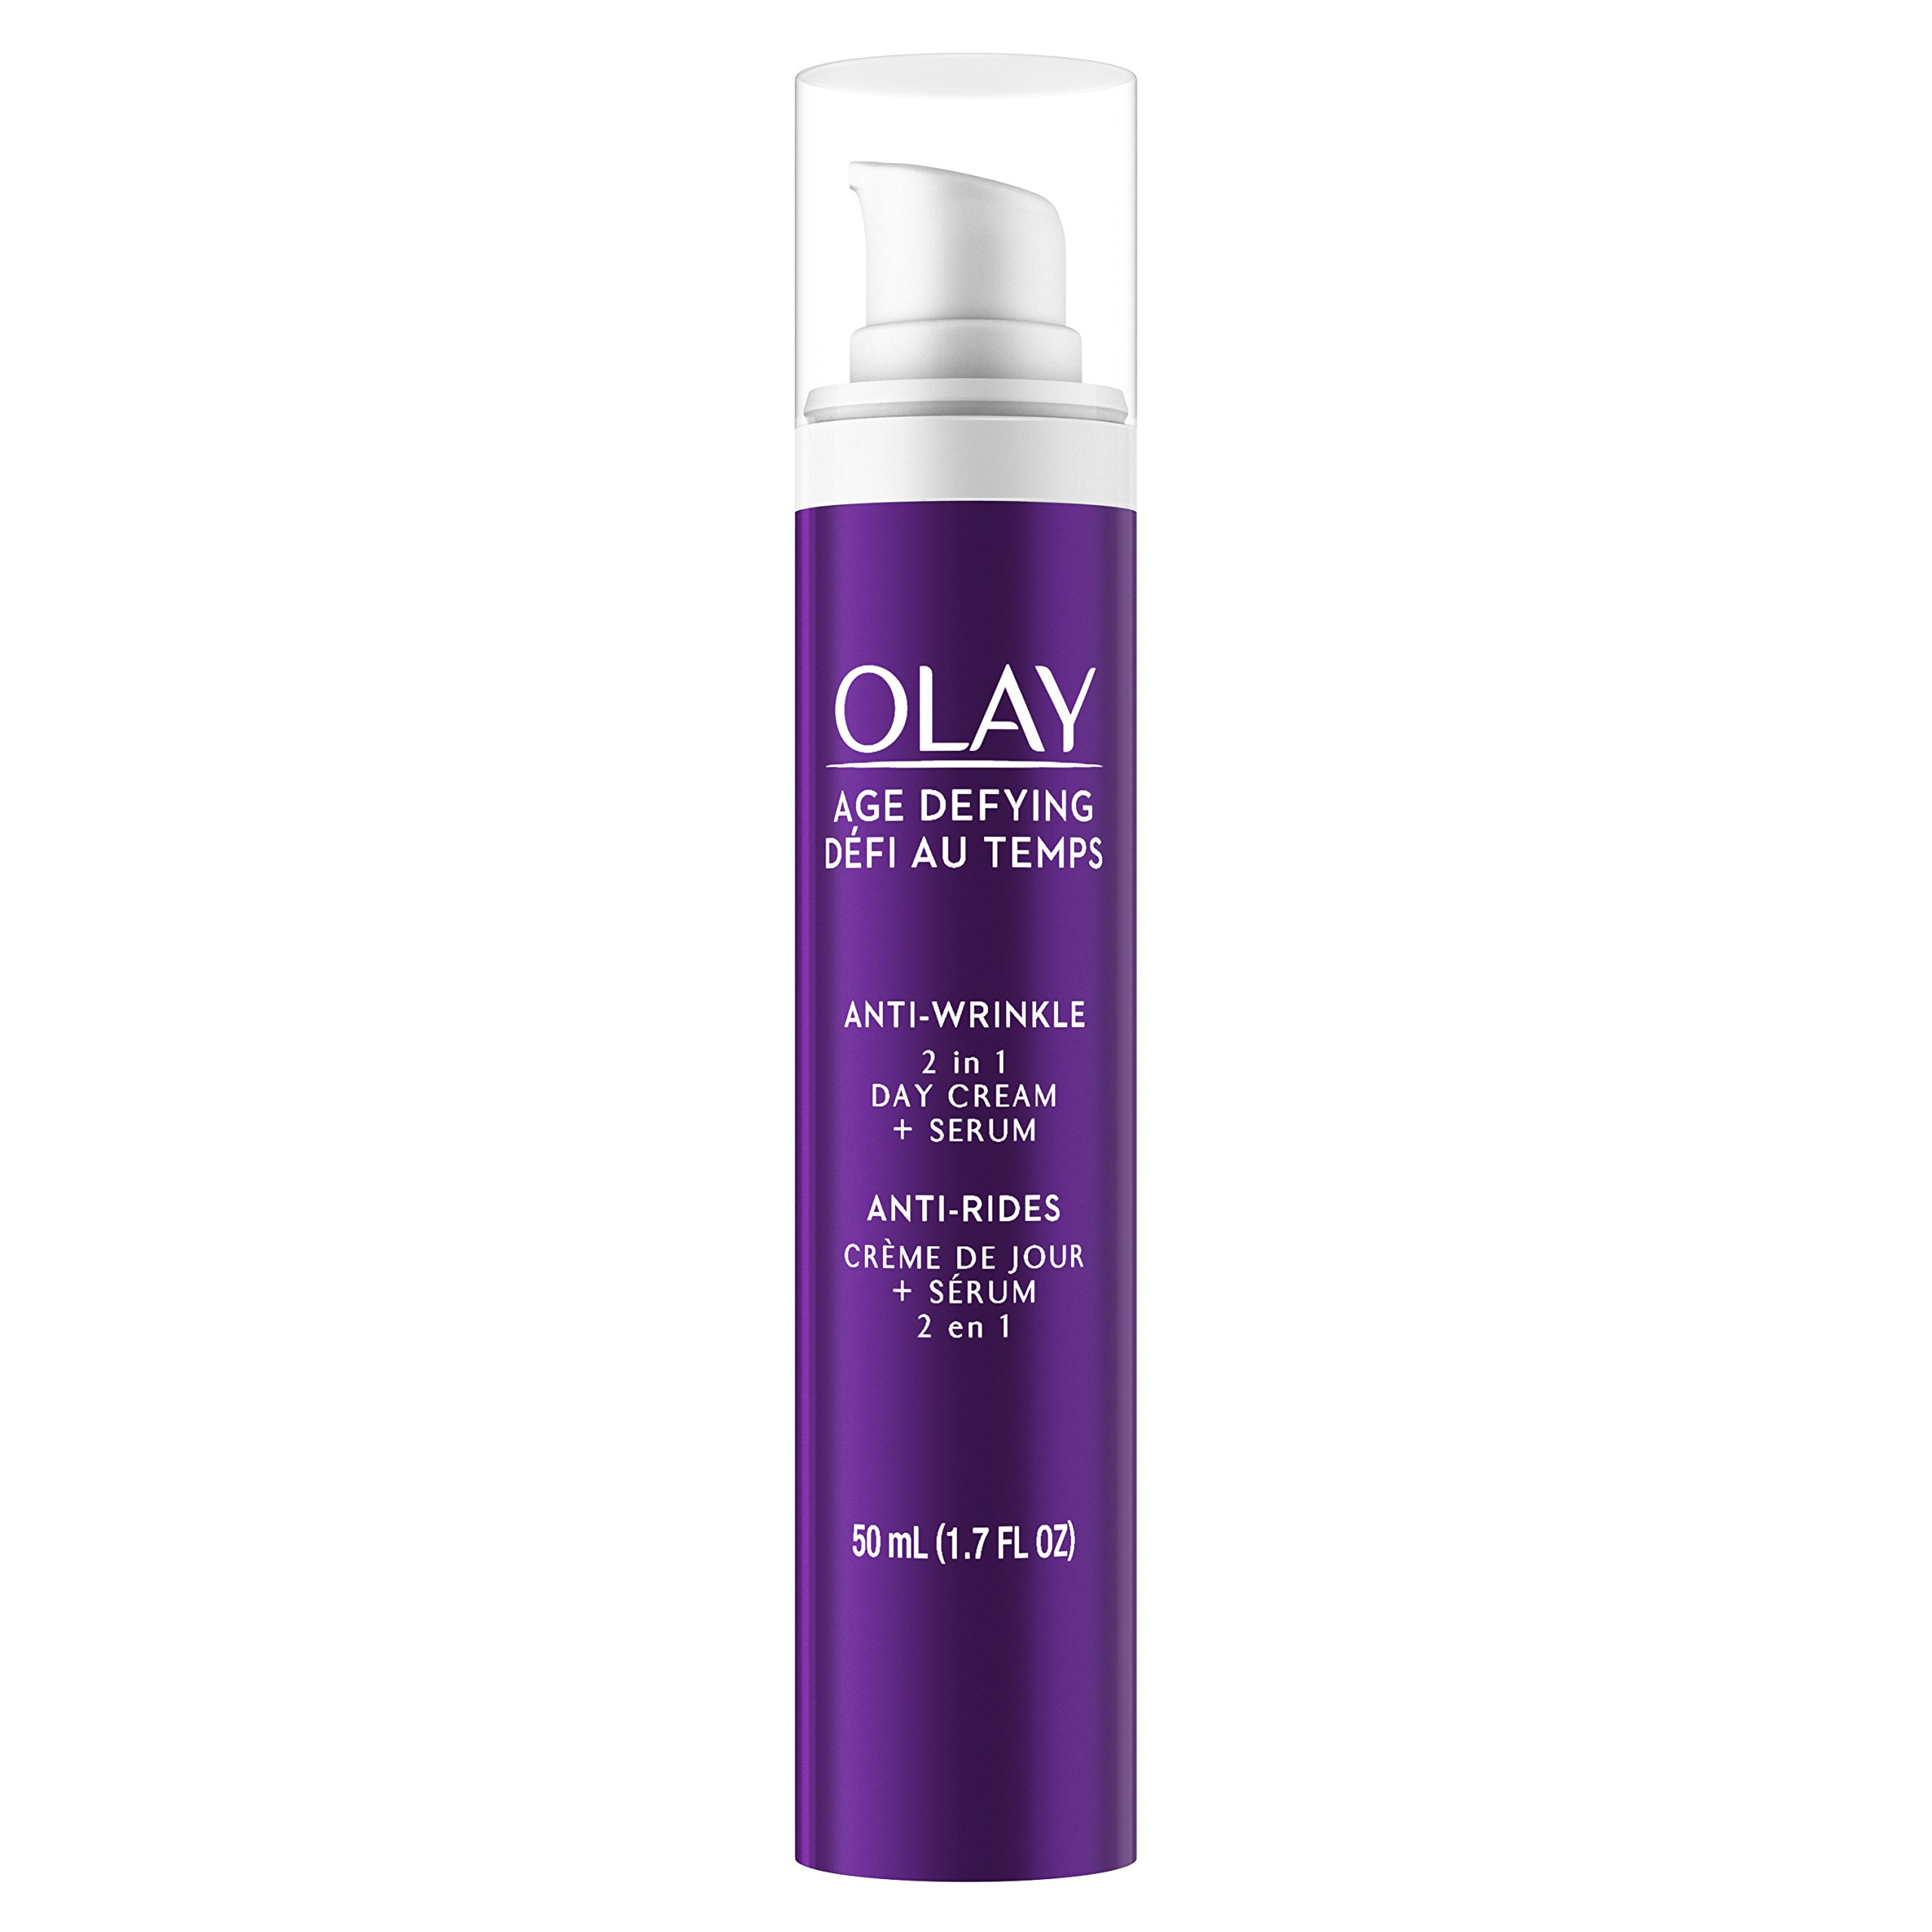 Olay Age Defying Anti-Wrinkle 2-in-1 Day Cream Plus Face Serum, 50 mL